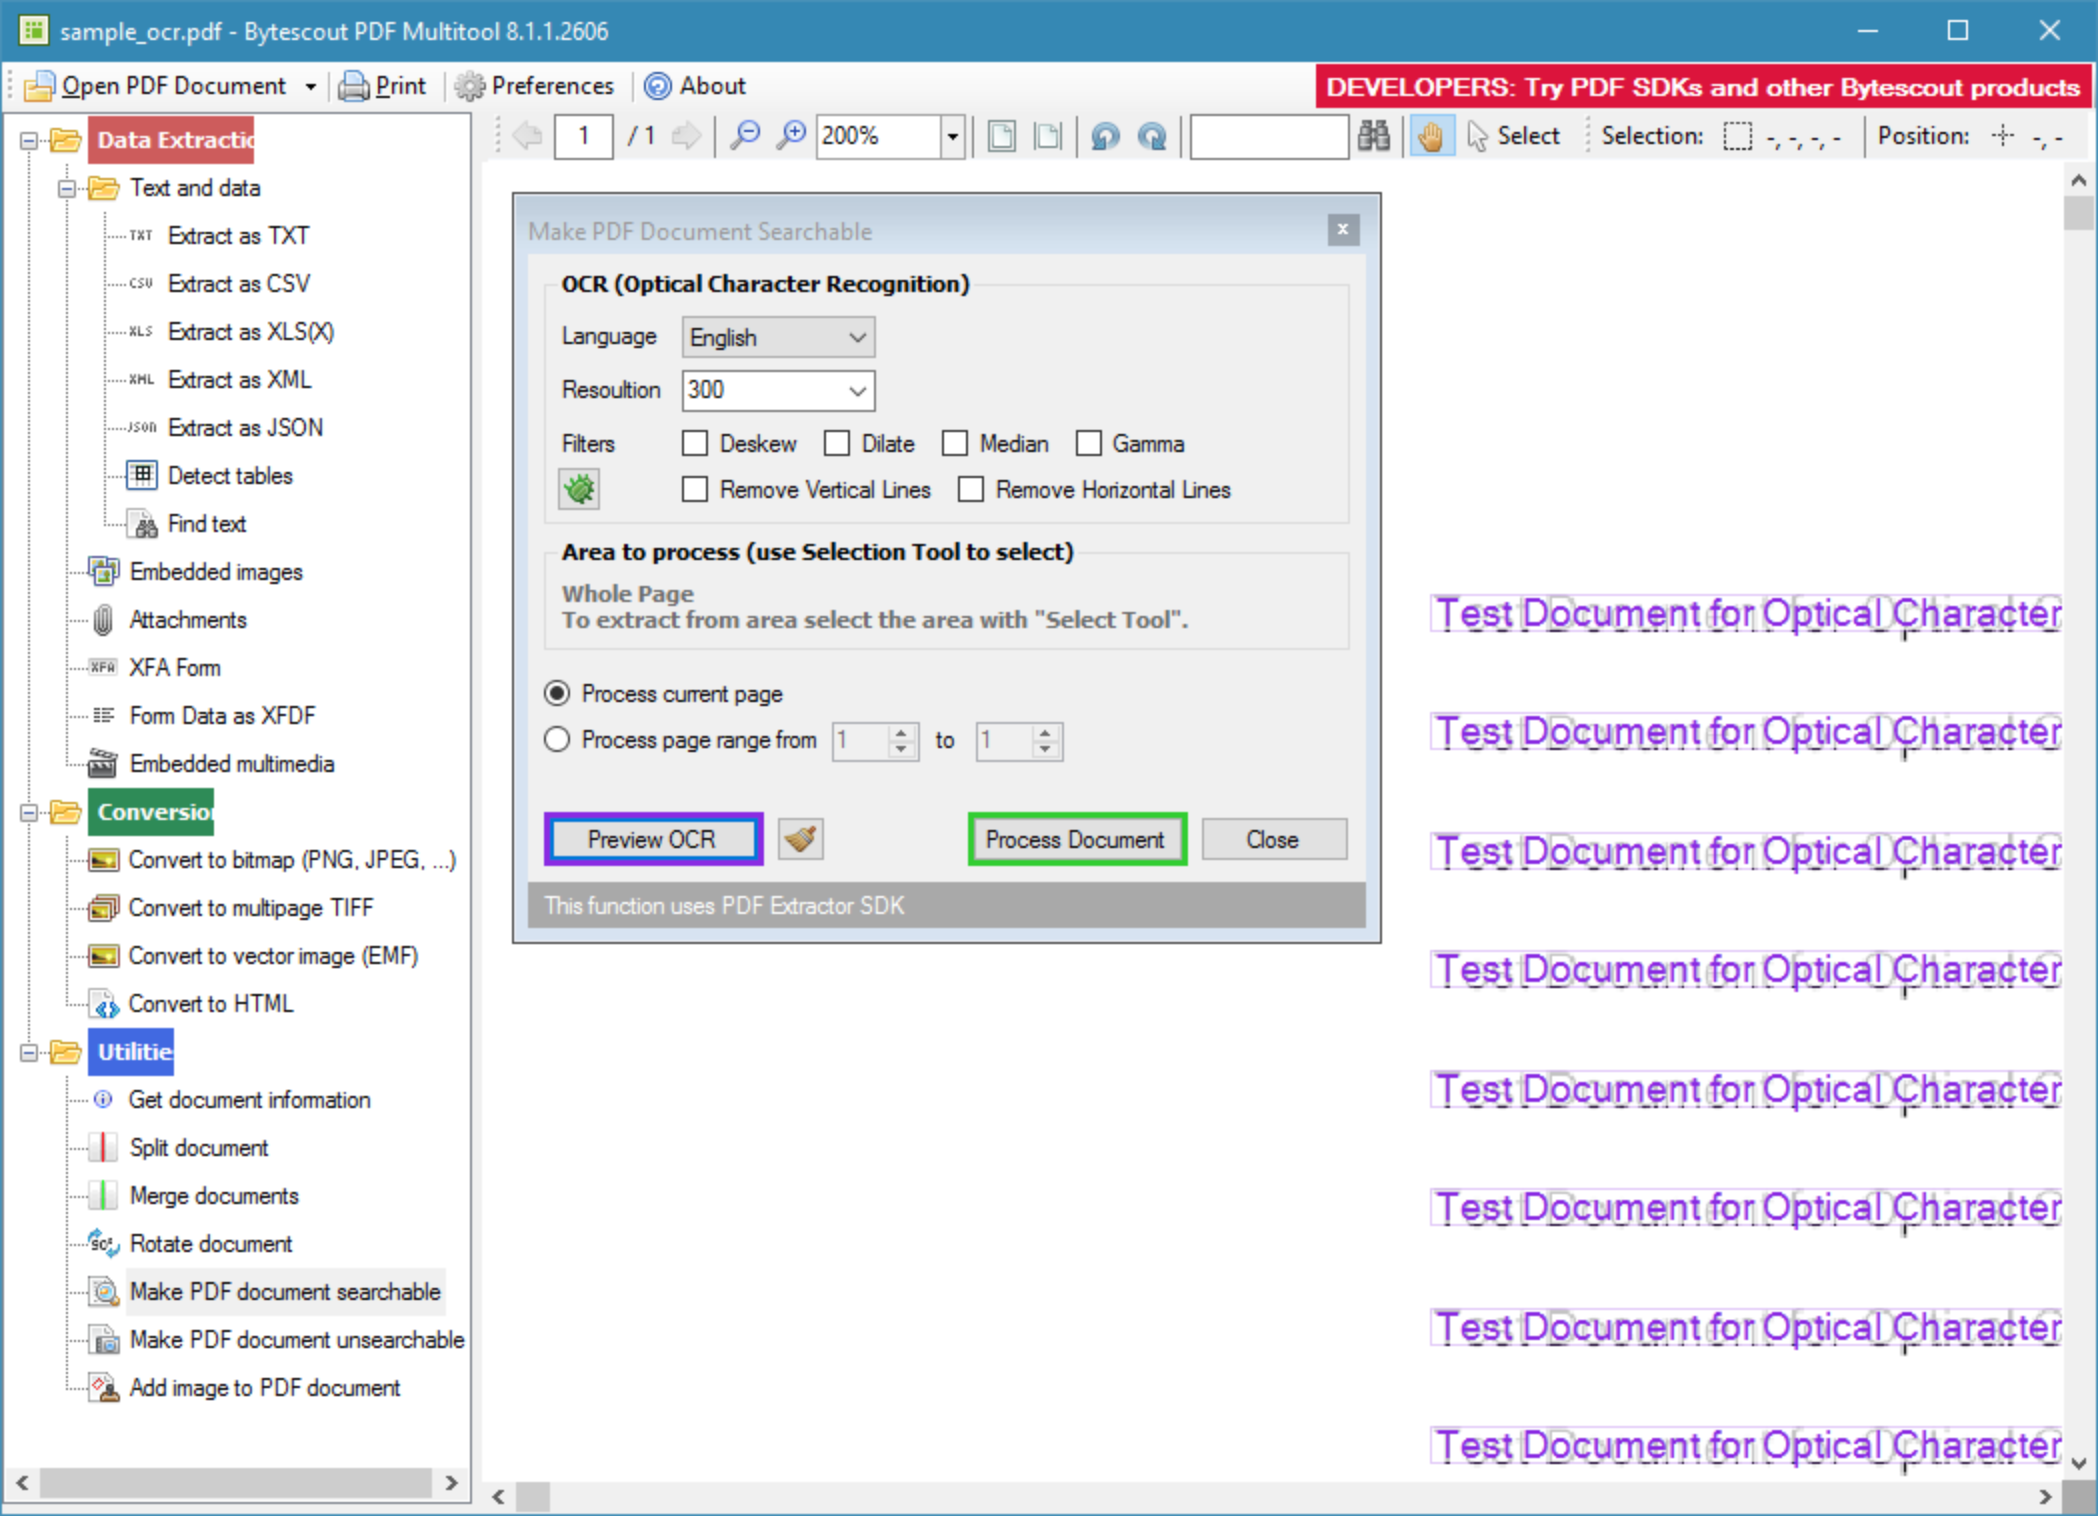 PDF Extractor successfully converts PDF documents regardless of the different type of characters